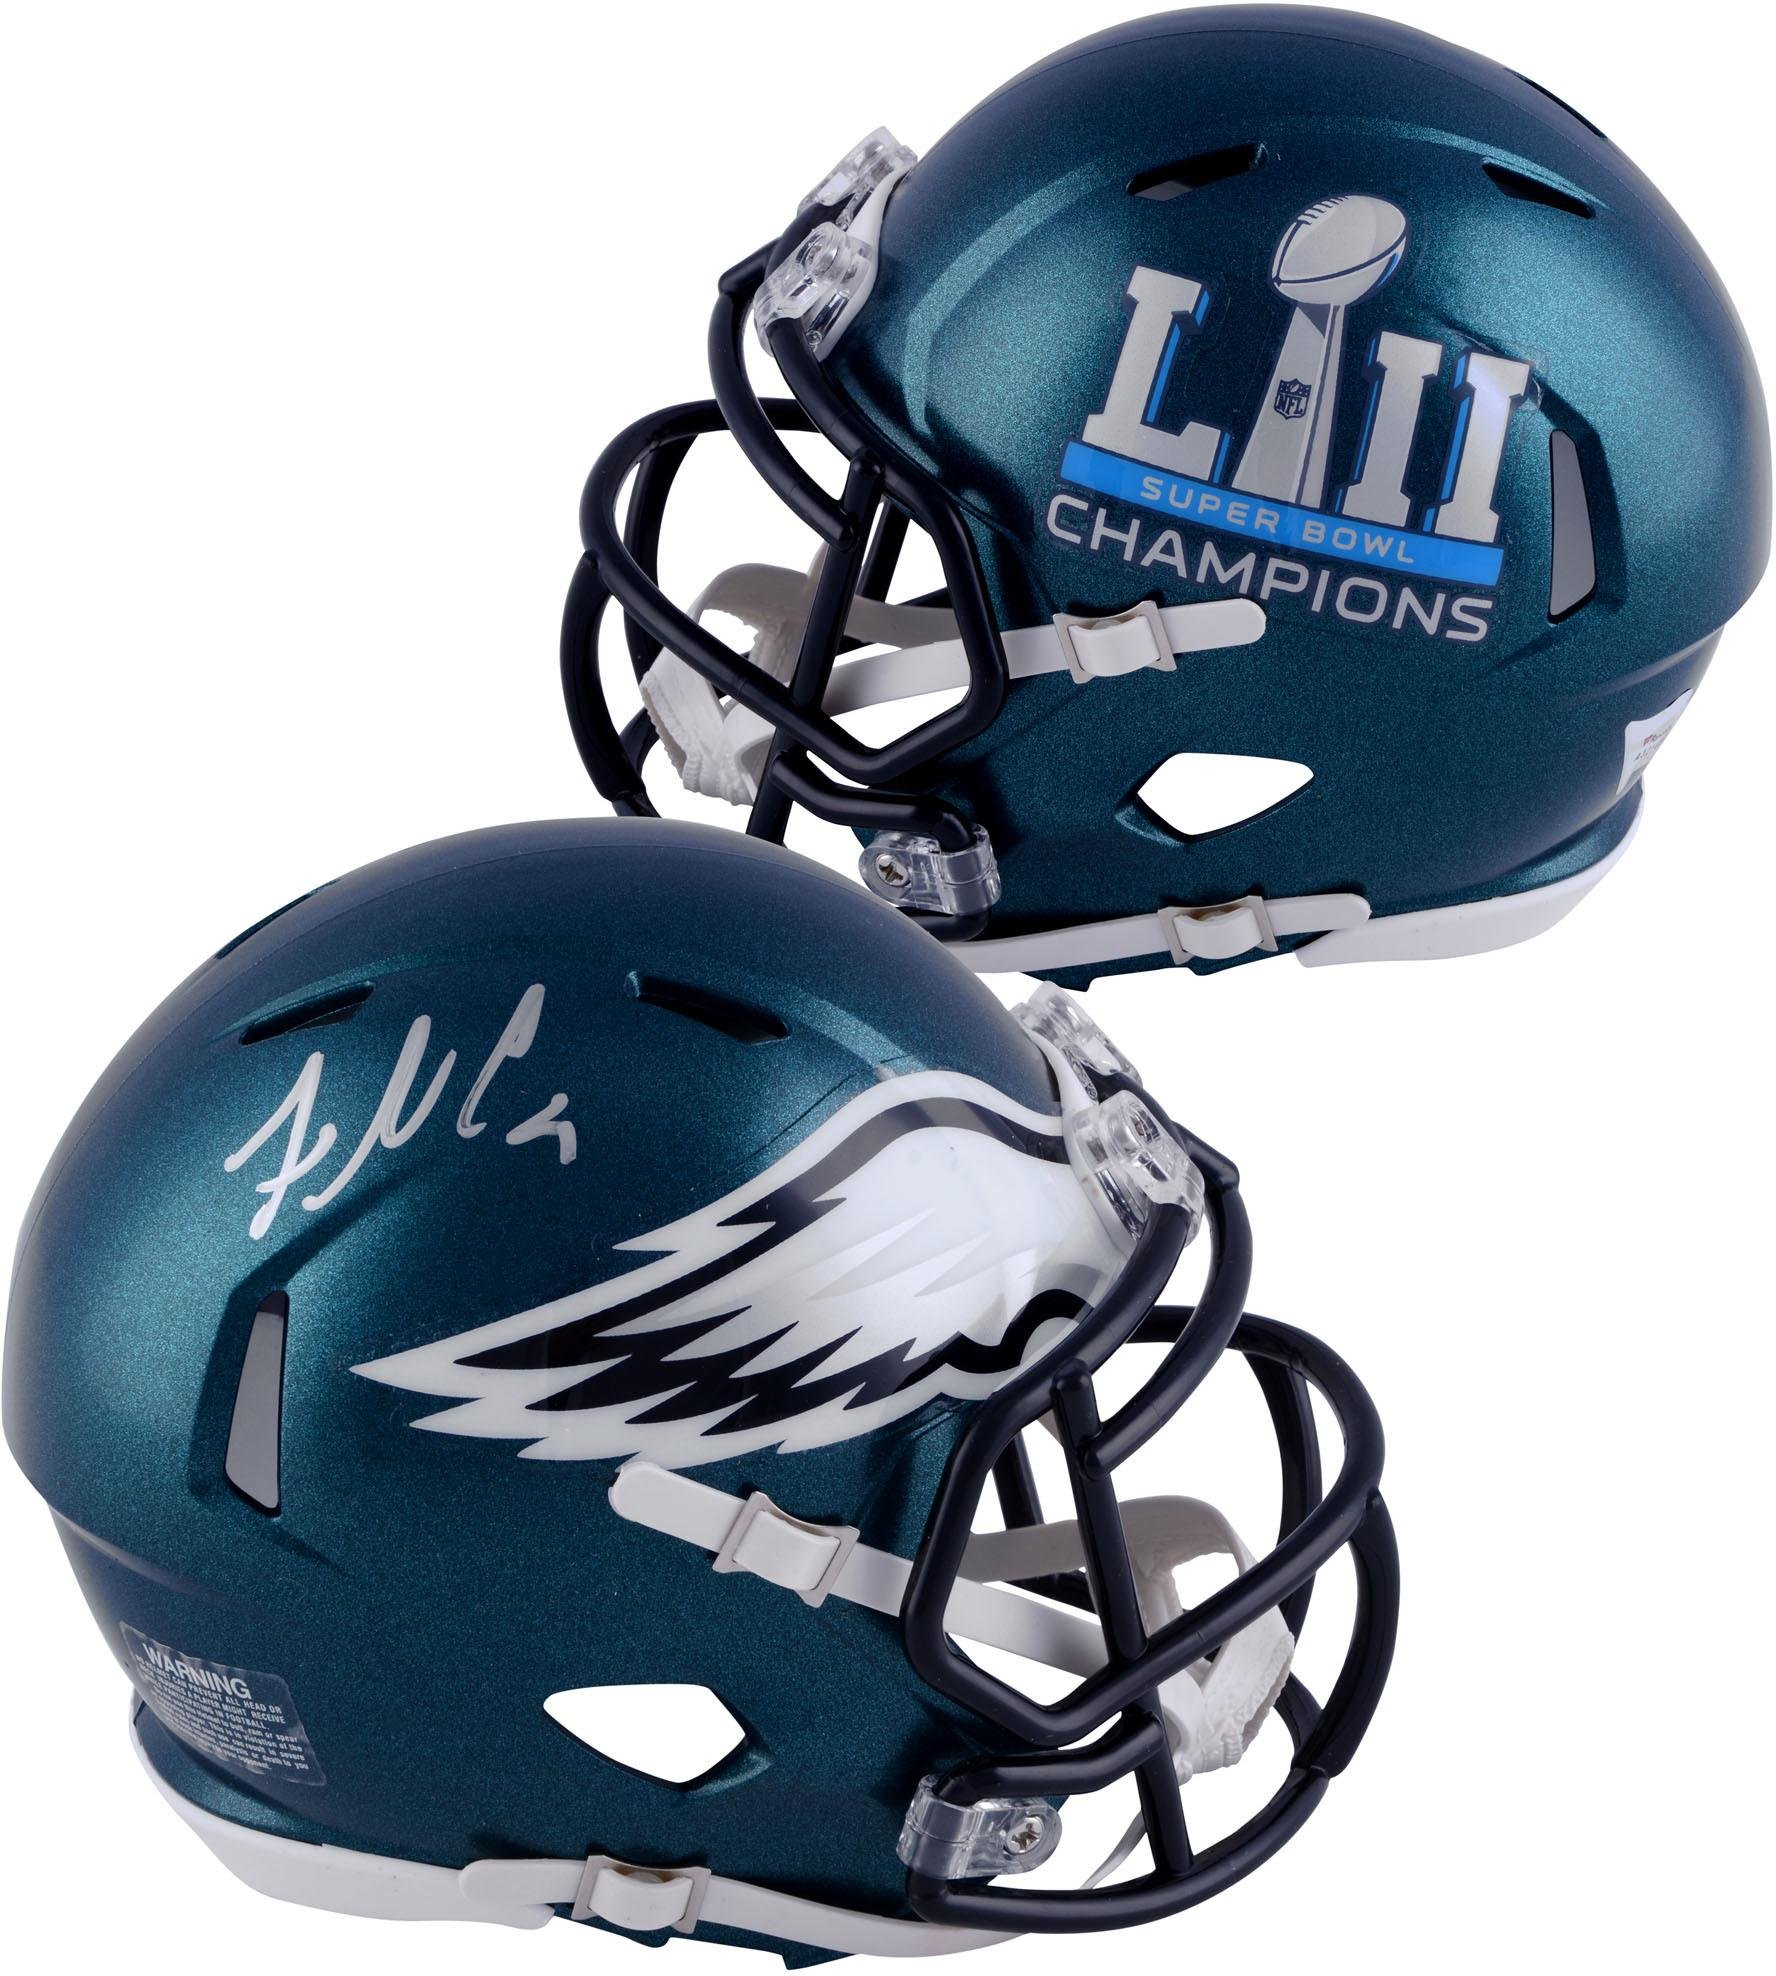 Fletcher Cox Philadelphia Eagles Autographed Riddell Speed Super Bowl LII Champions Mini Helmet Fanatics Authentic Certified